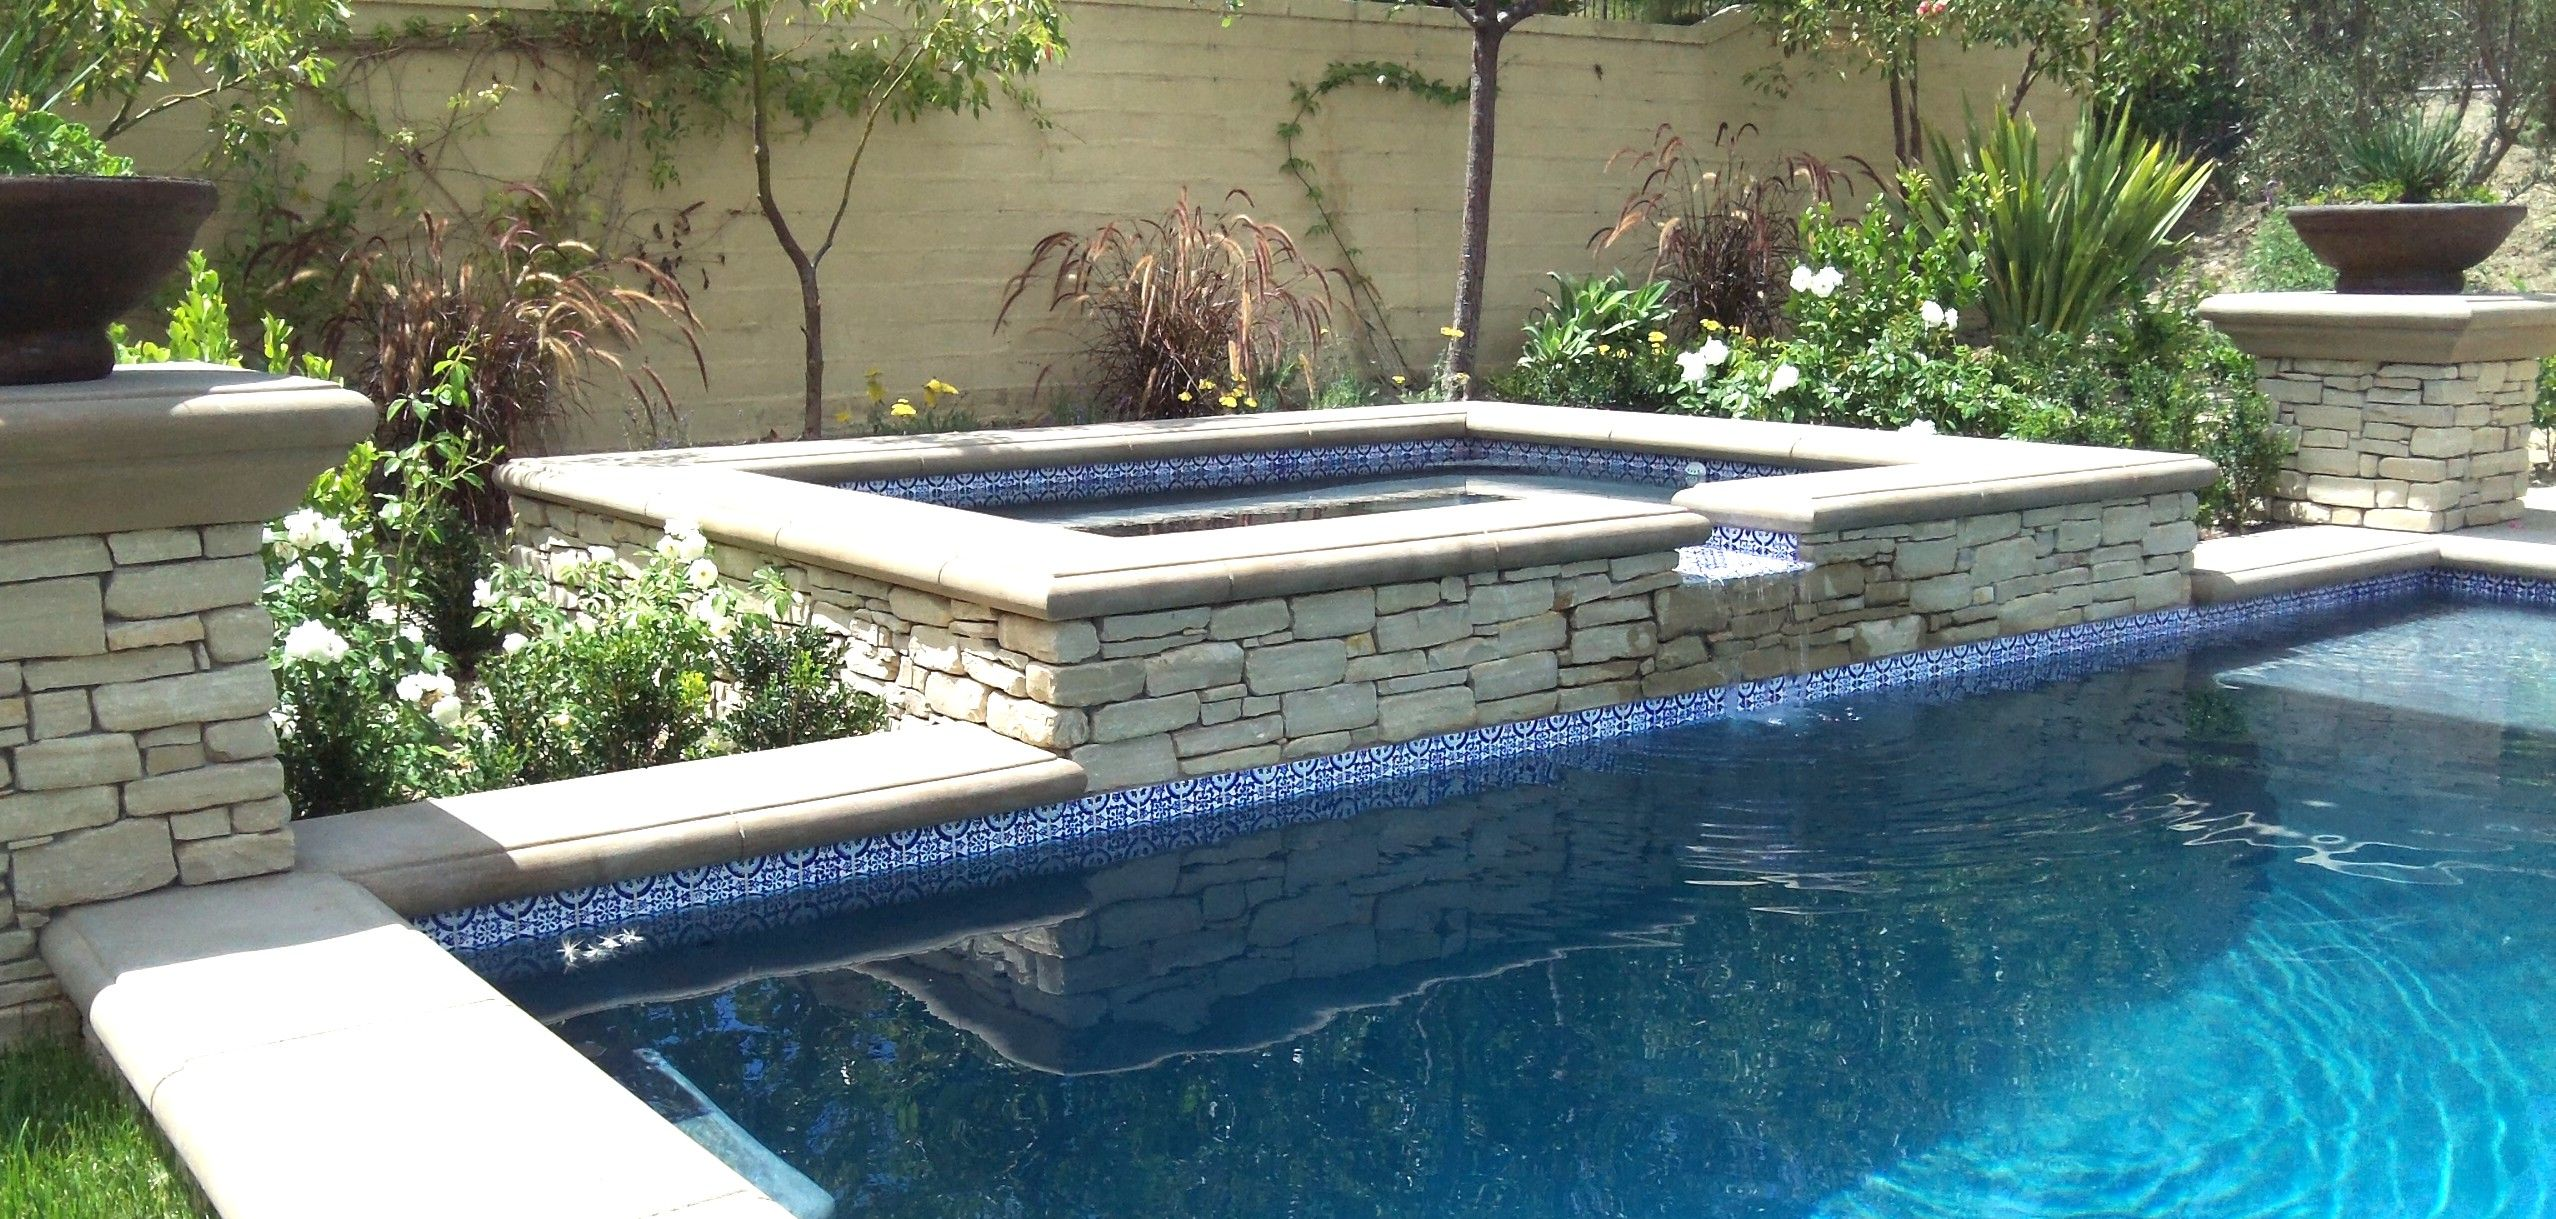 Pool tile designs pool water fountain design ideas small Swimming pool styles designs